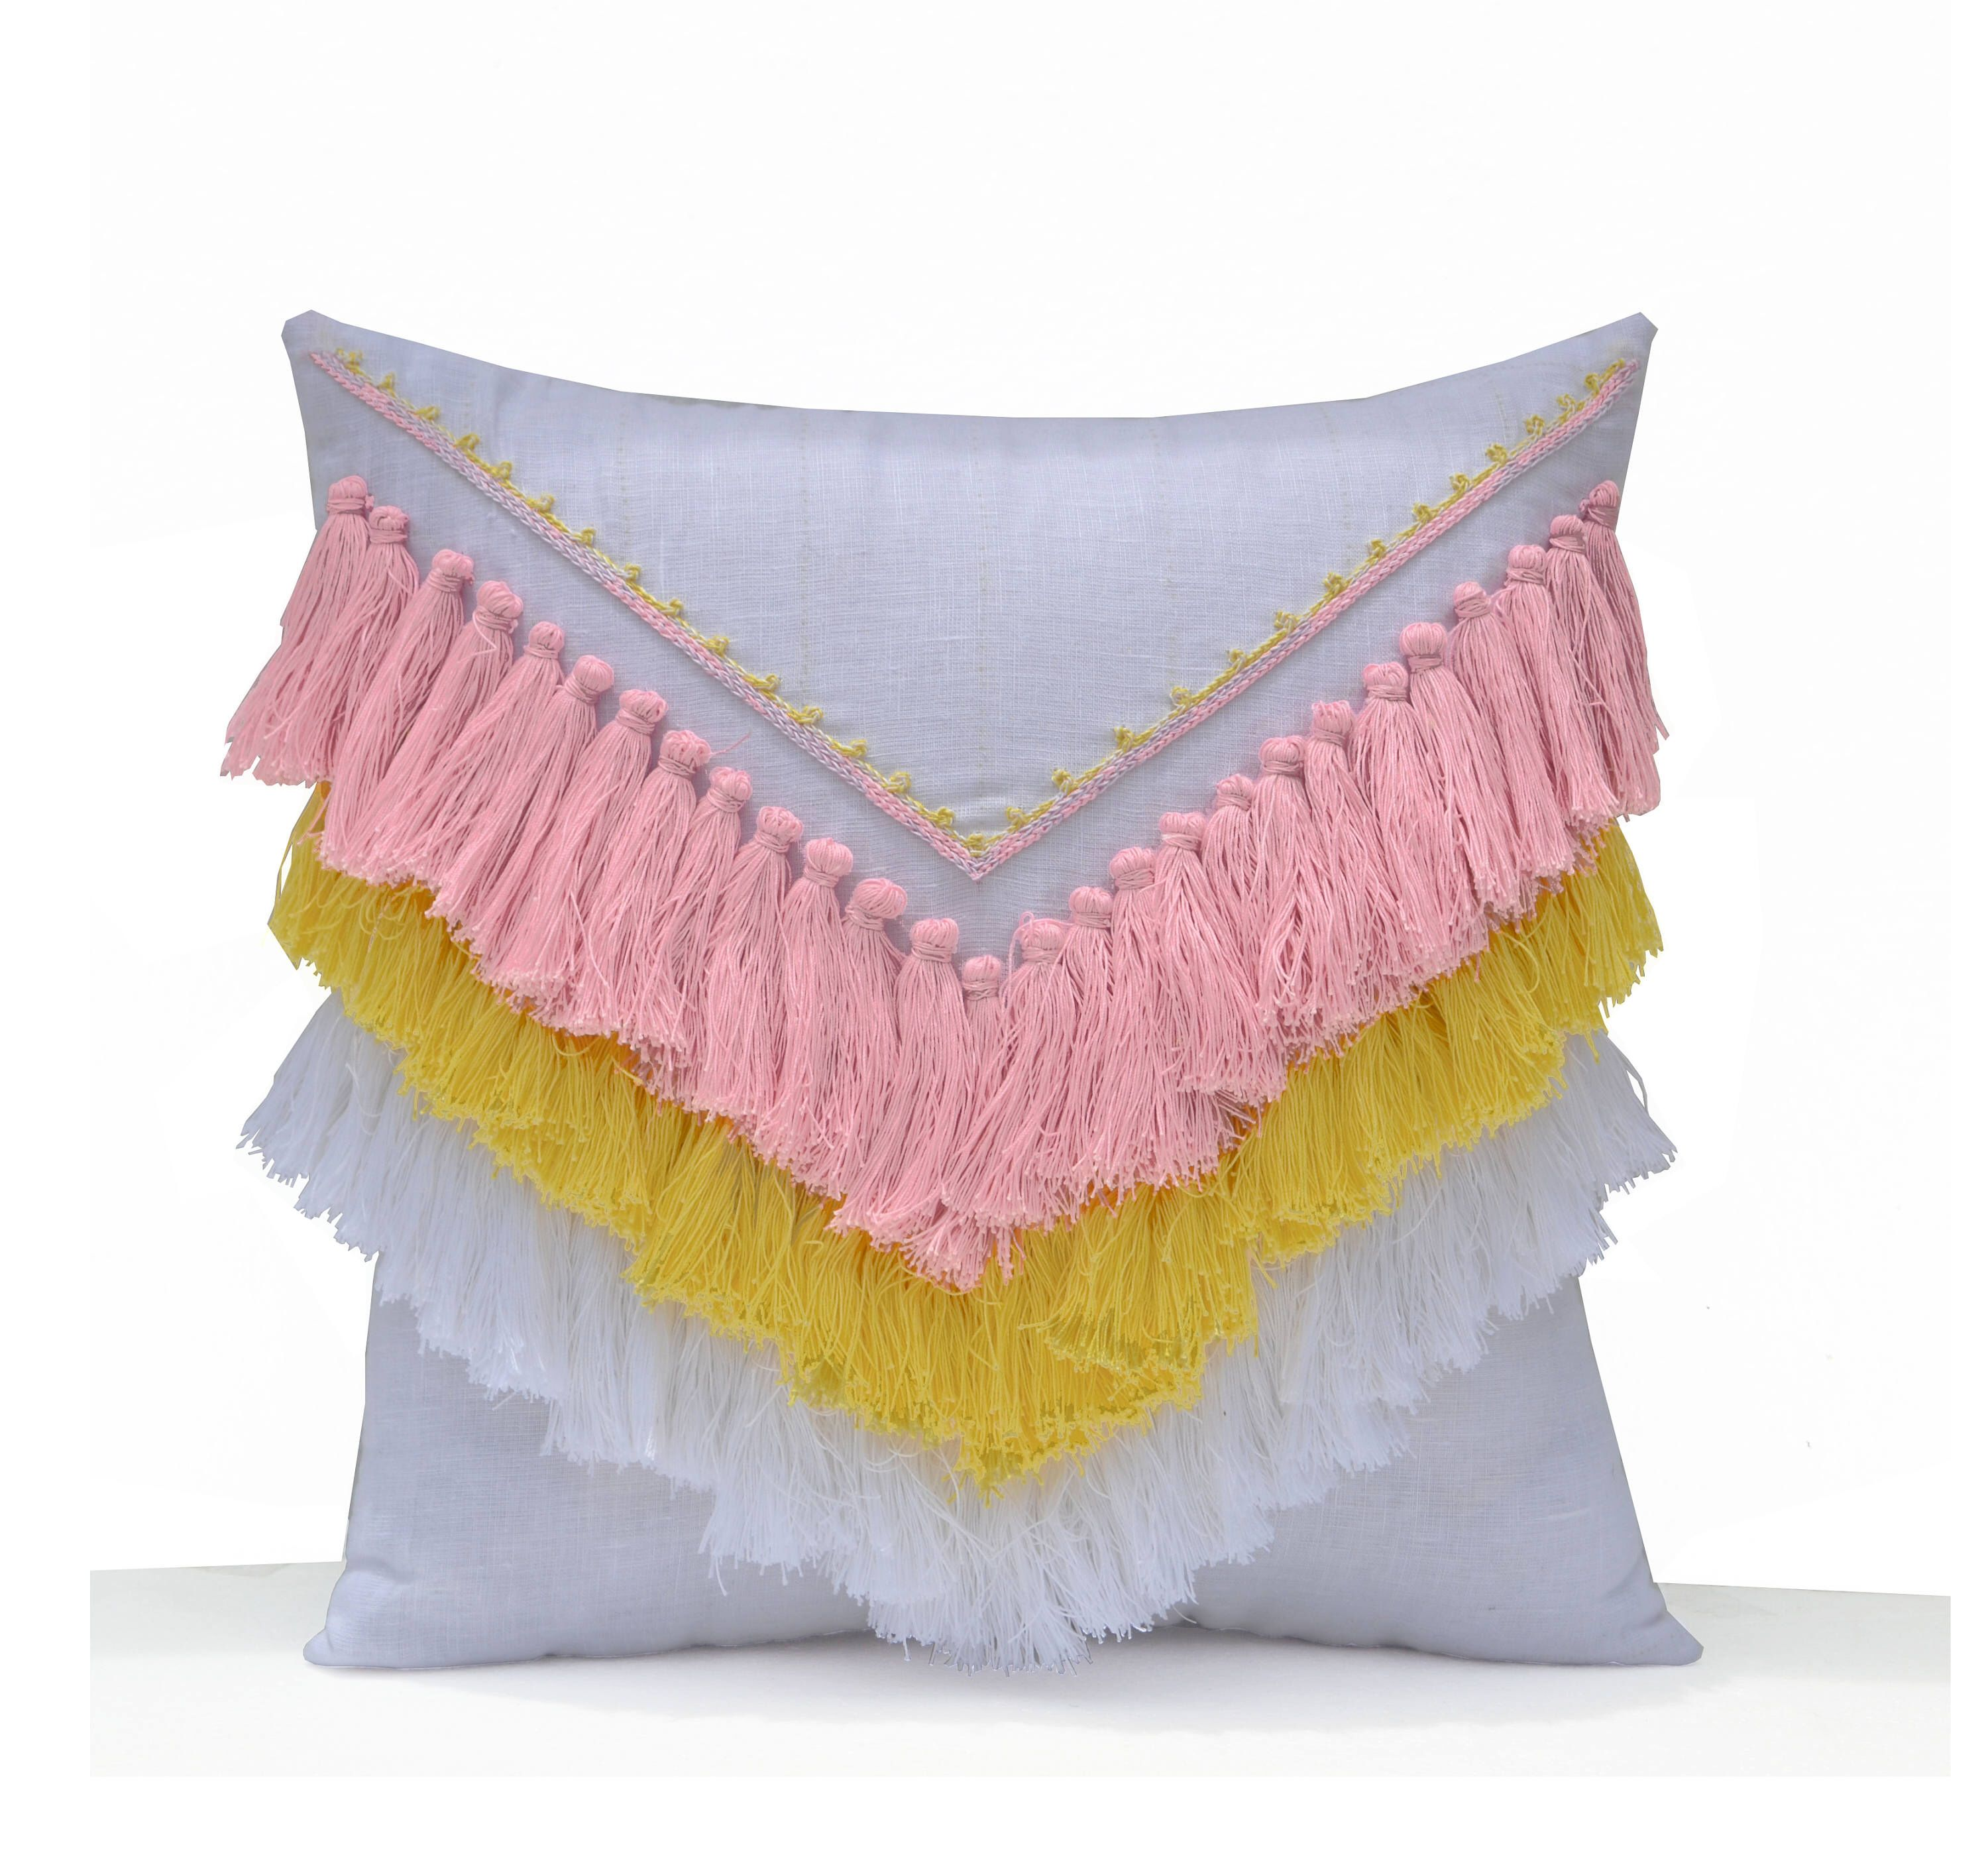 Items similar to Pink Yellow Shaggy Pillow, Boho Pillow Cover, Geometric Decorative Pillow Cover, tassel pillow, Dorm Pillow, Best Friend Gift, Gift For Her on Etsy